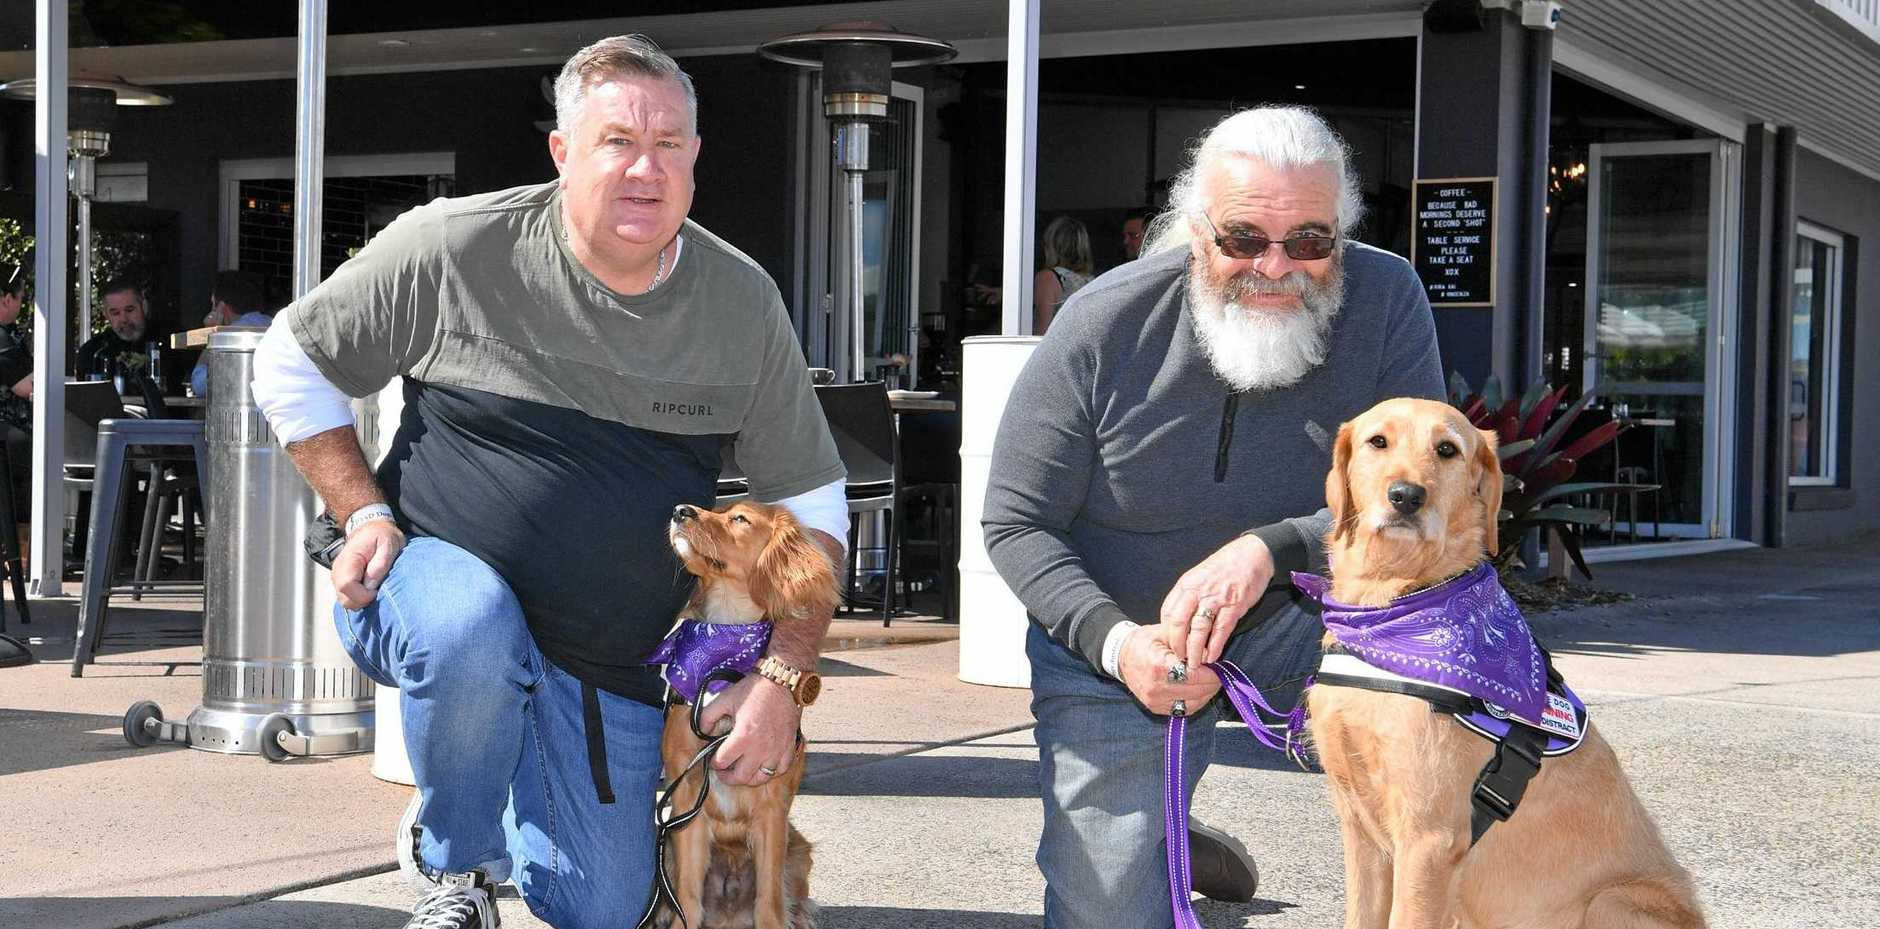 Andrew Harris and Roger Weeks at Riba Kai with rescued dogs that they train to assist those affected by PTSD.